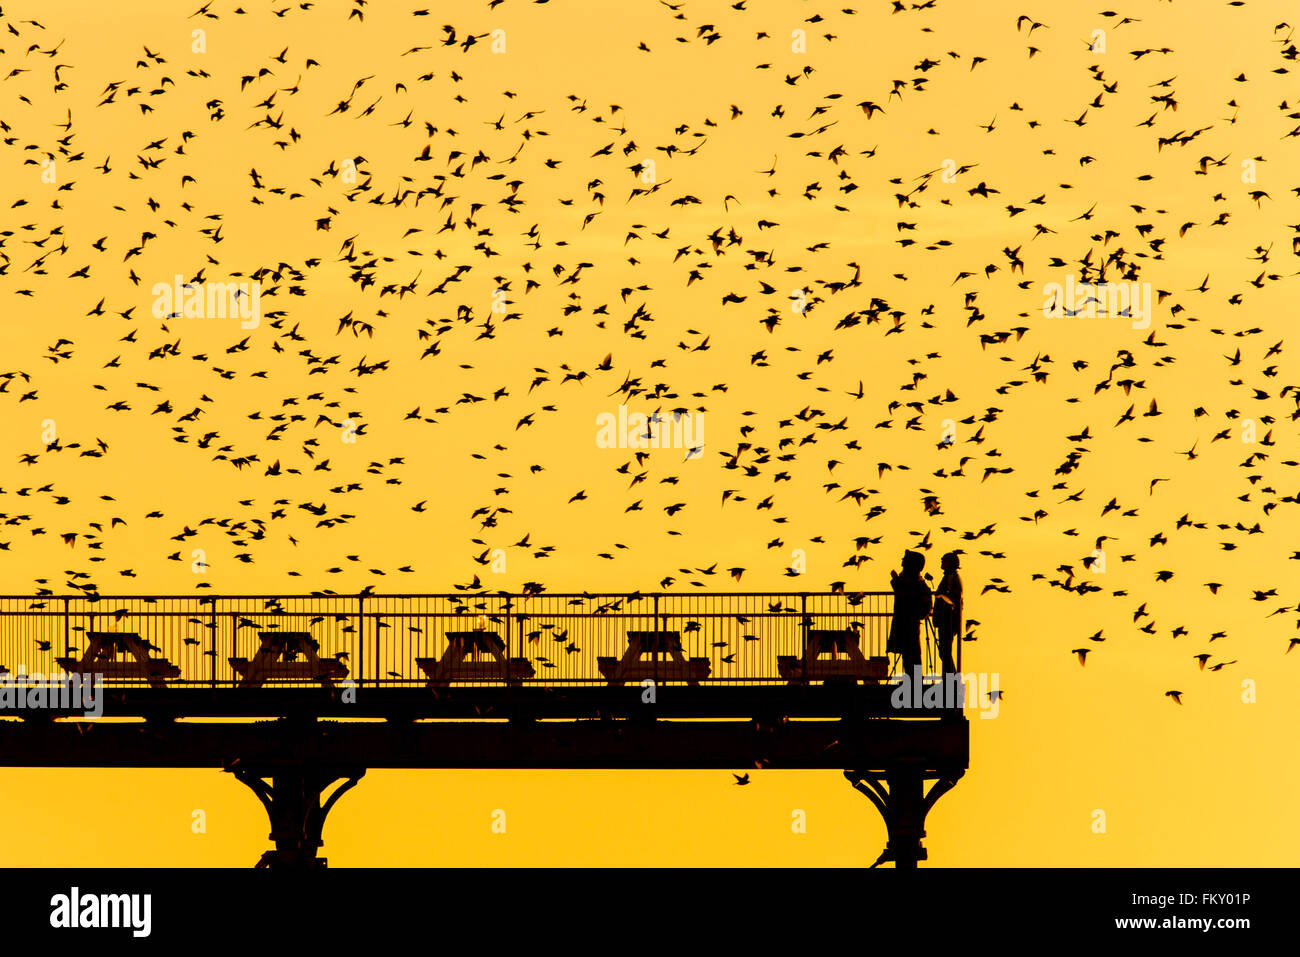 Aberystwyth Wales UK, Thursday 10 March 2016   UK weather:s As the sun sets, flocks of thousands of tiny starlings - Stock Image